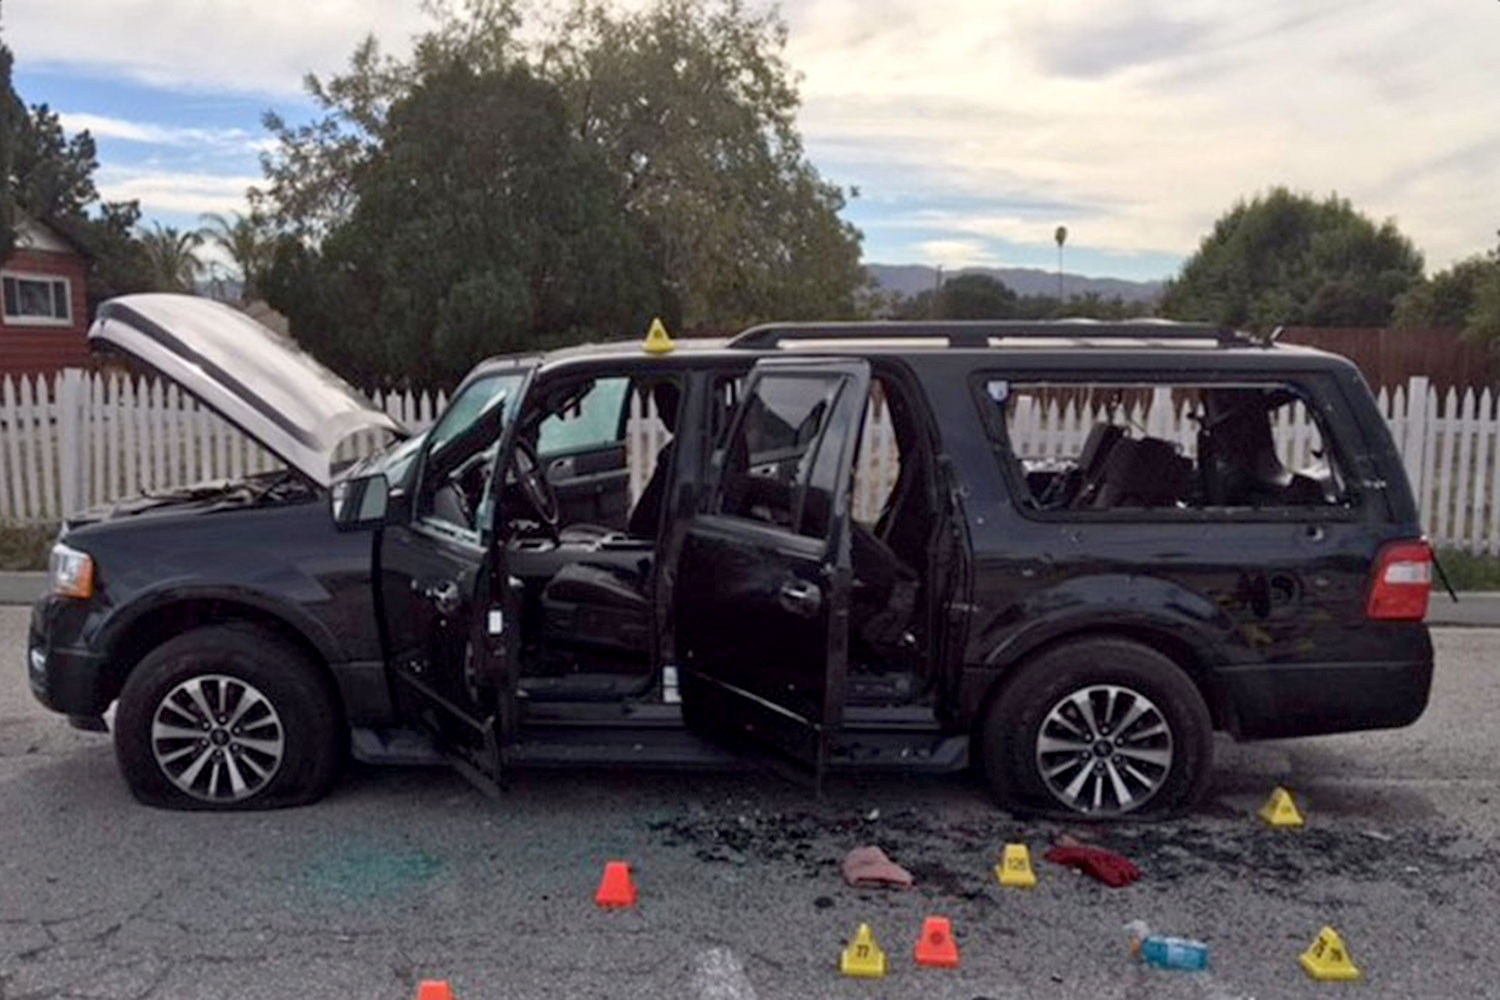 San_Bernardino_shooting_suspect_vehicle.jpg